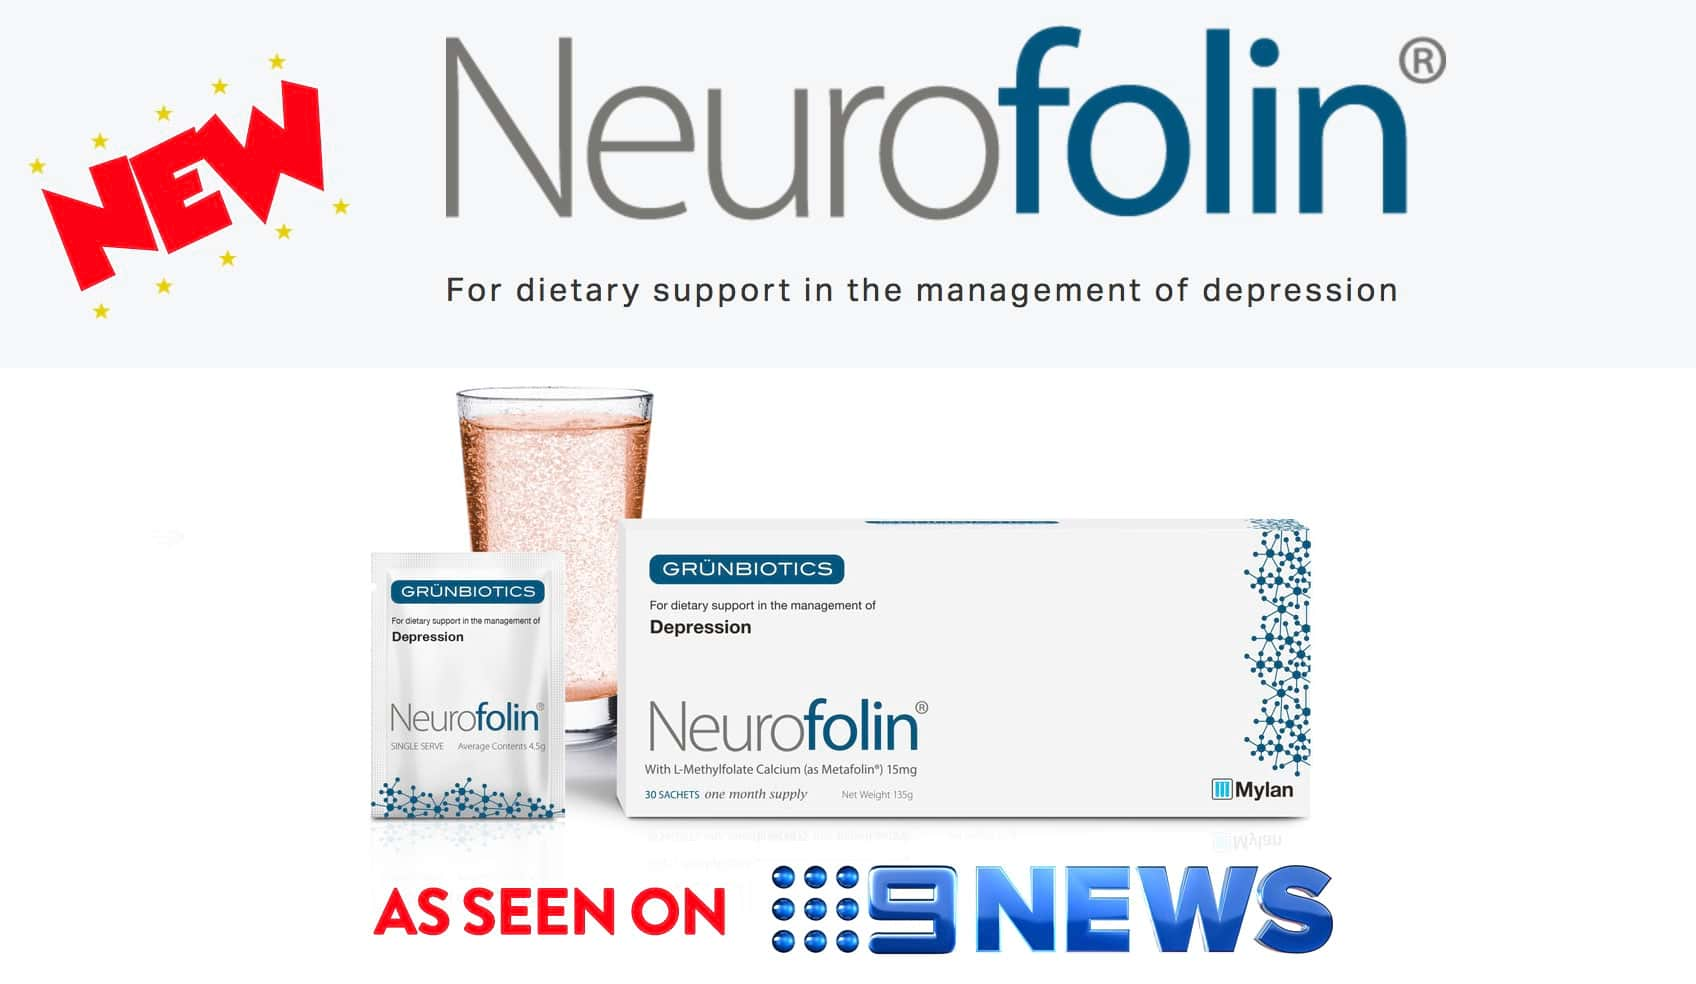 Neurofolin as Seen on TV